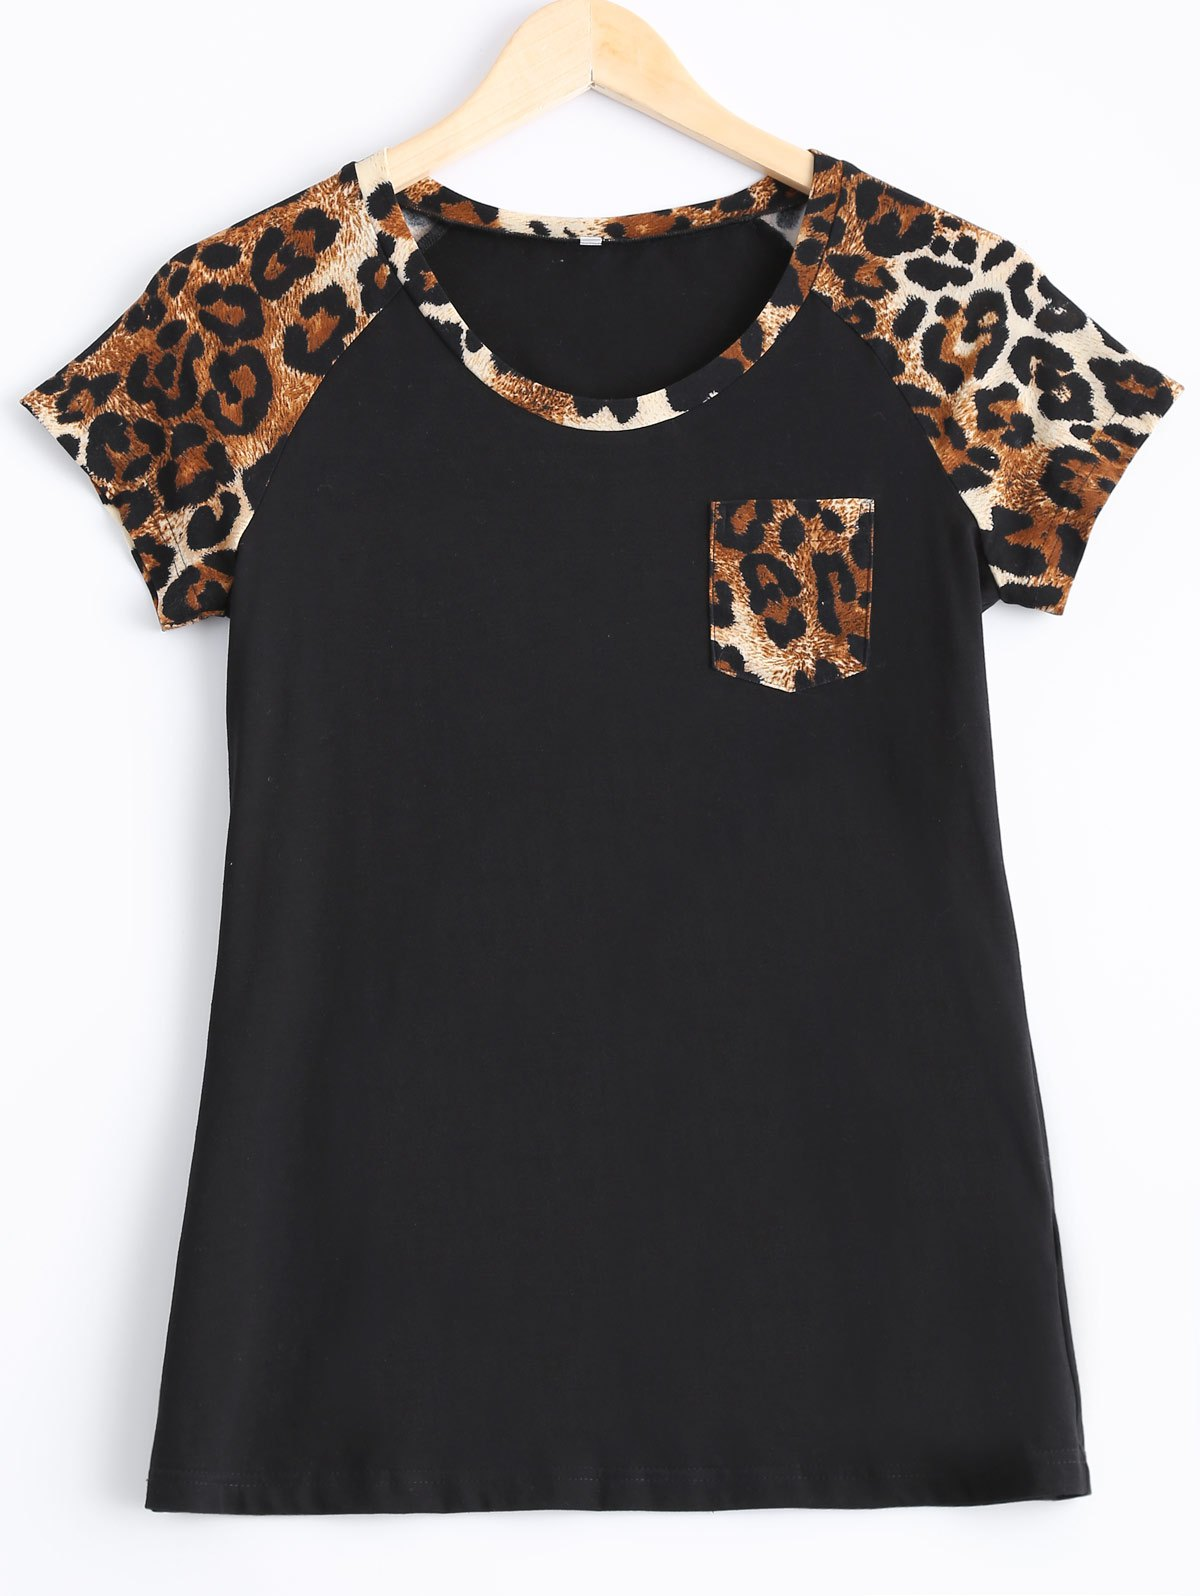 Chic Leopard Print Single Pocket T-Shirt - LEOPARD XL